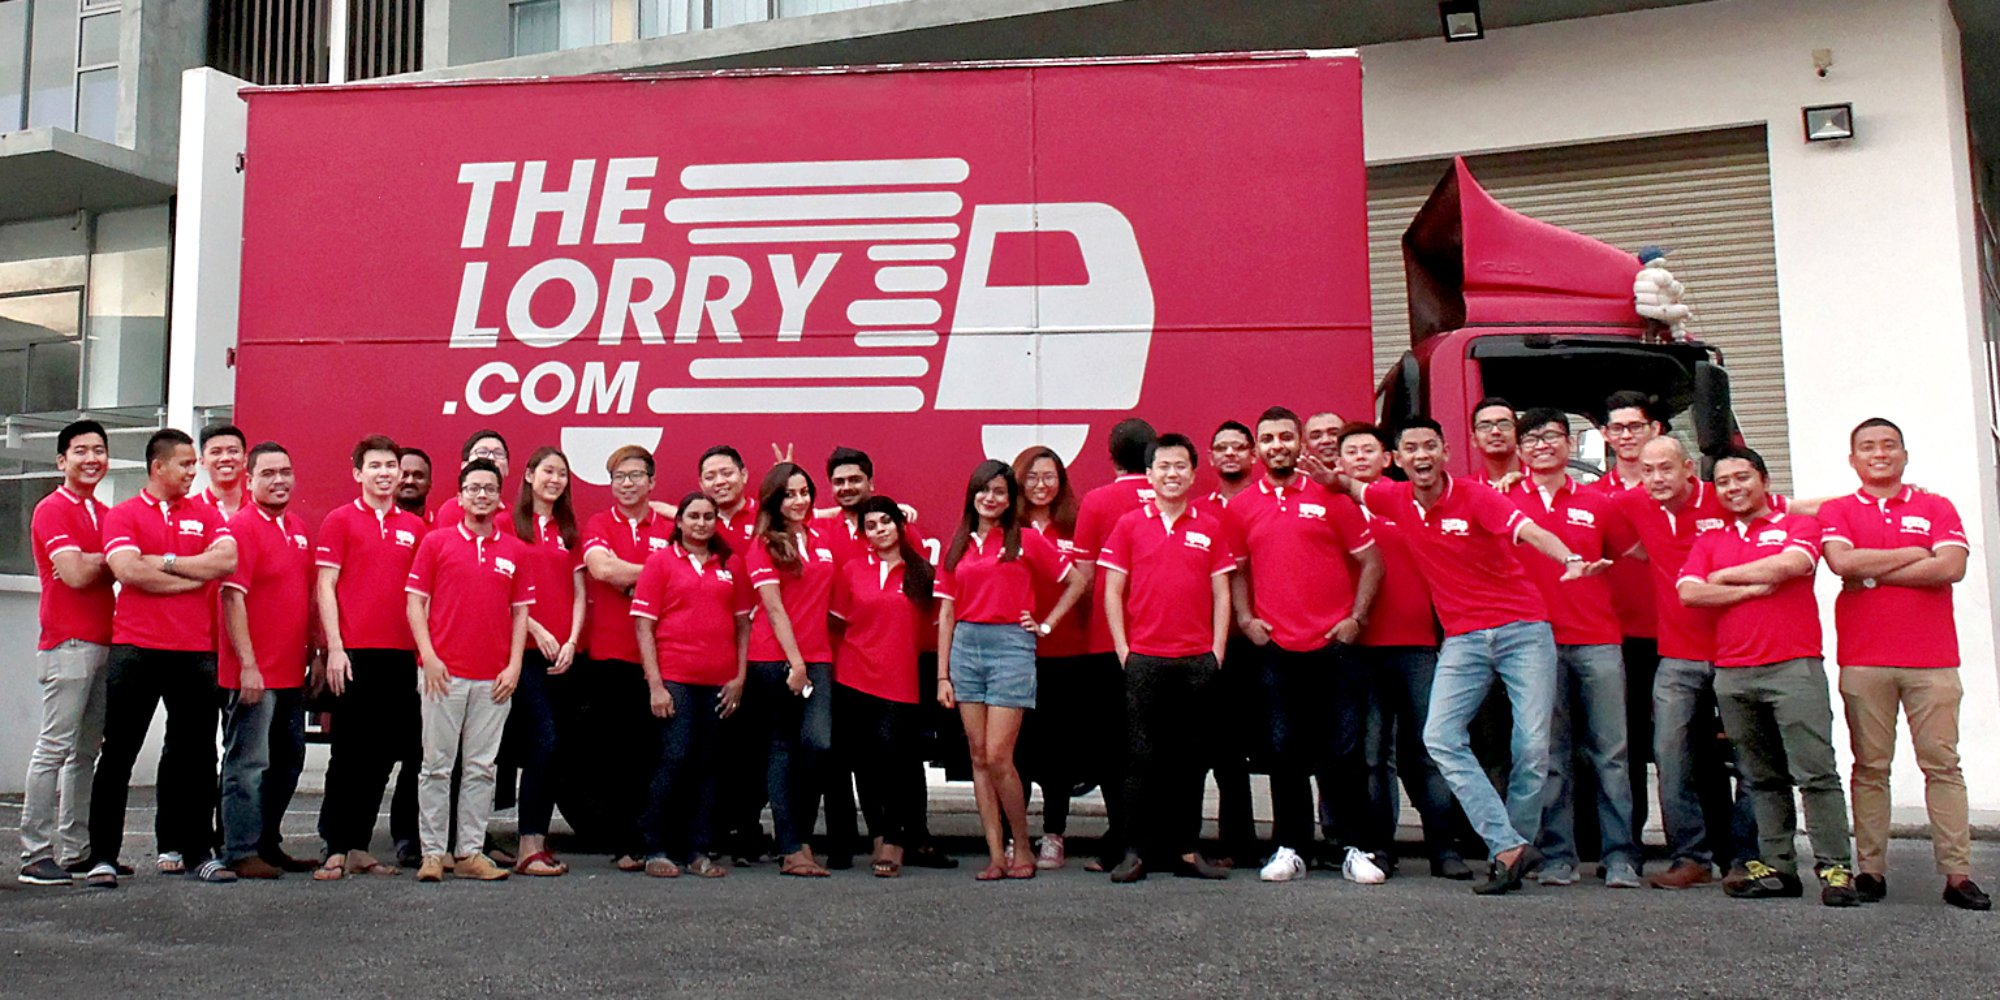 Image result for the lorry